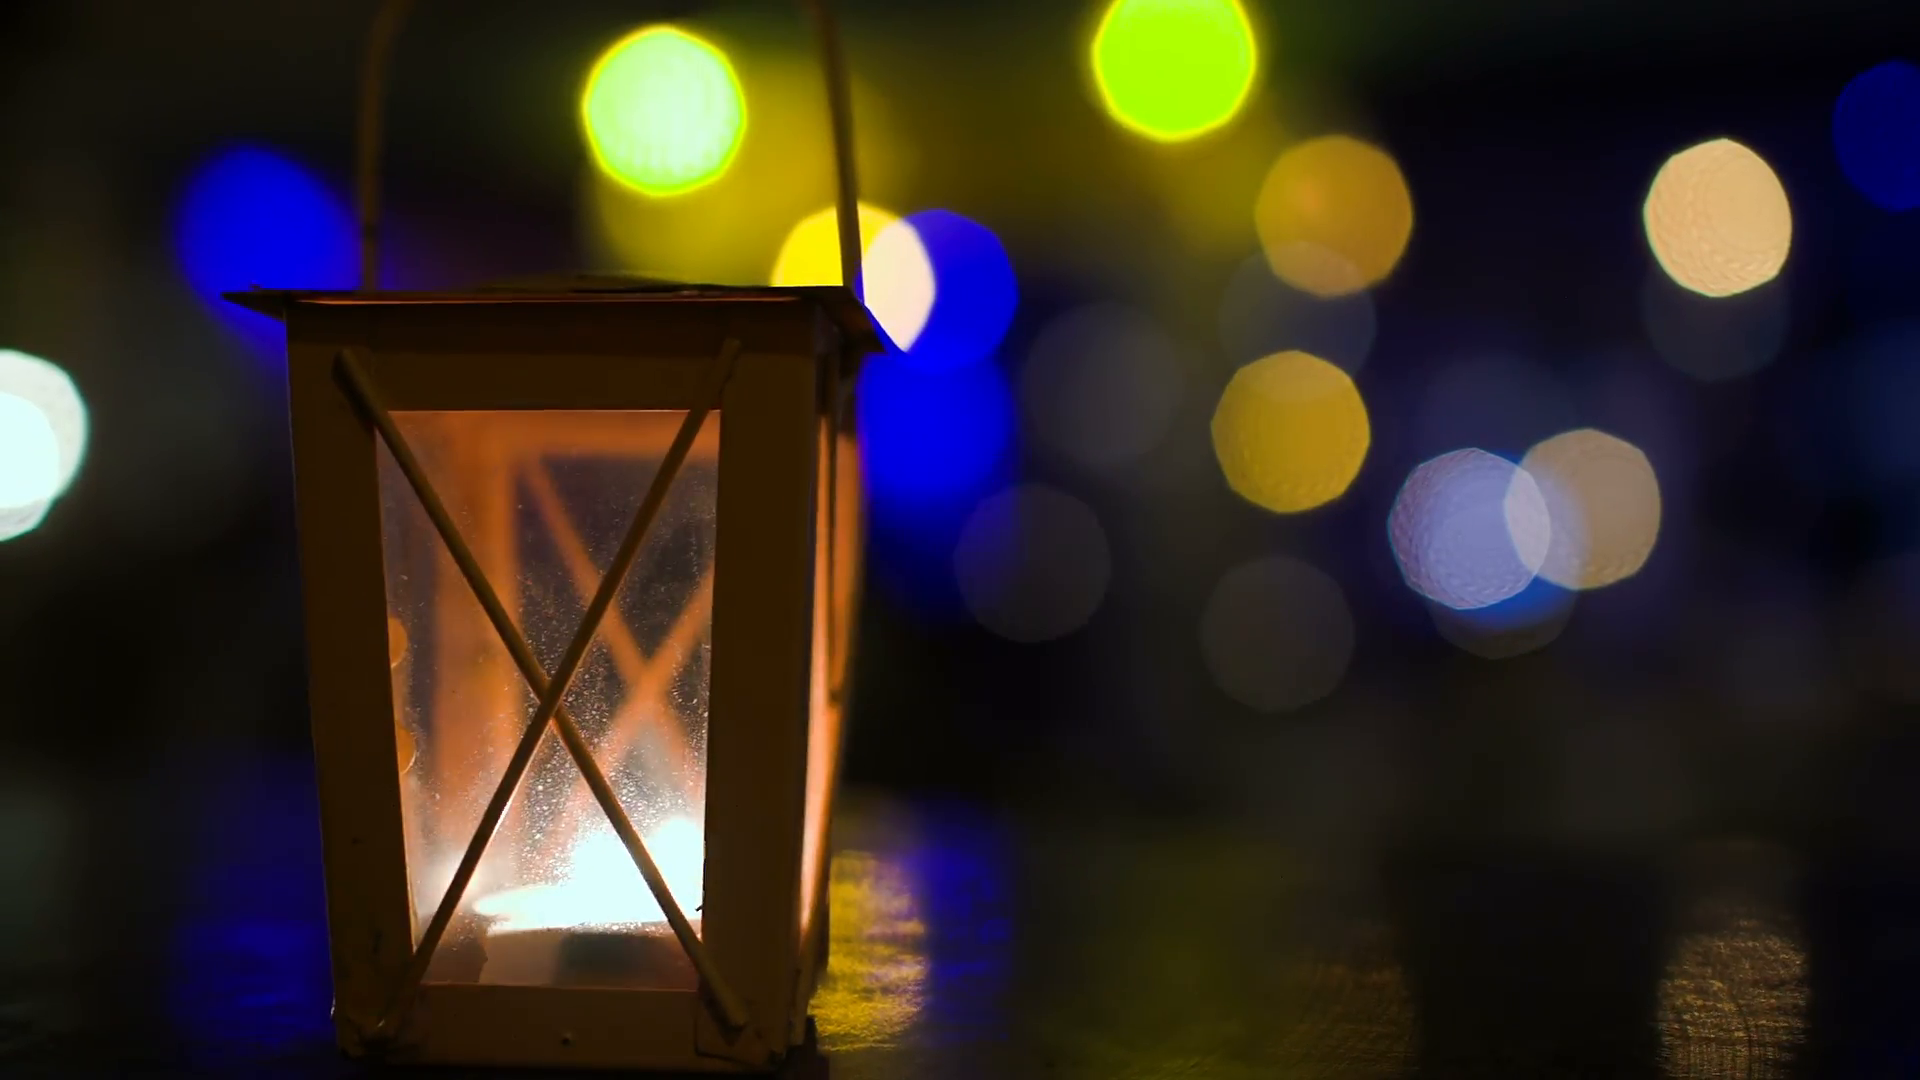 Outdoor lantern with lit candle at night. Light blinking as wind swinging  the lamp. Blurry colorful lights and people in background Stock Video.